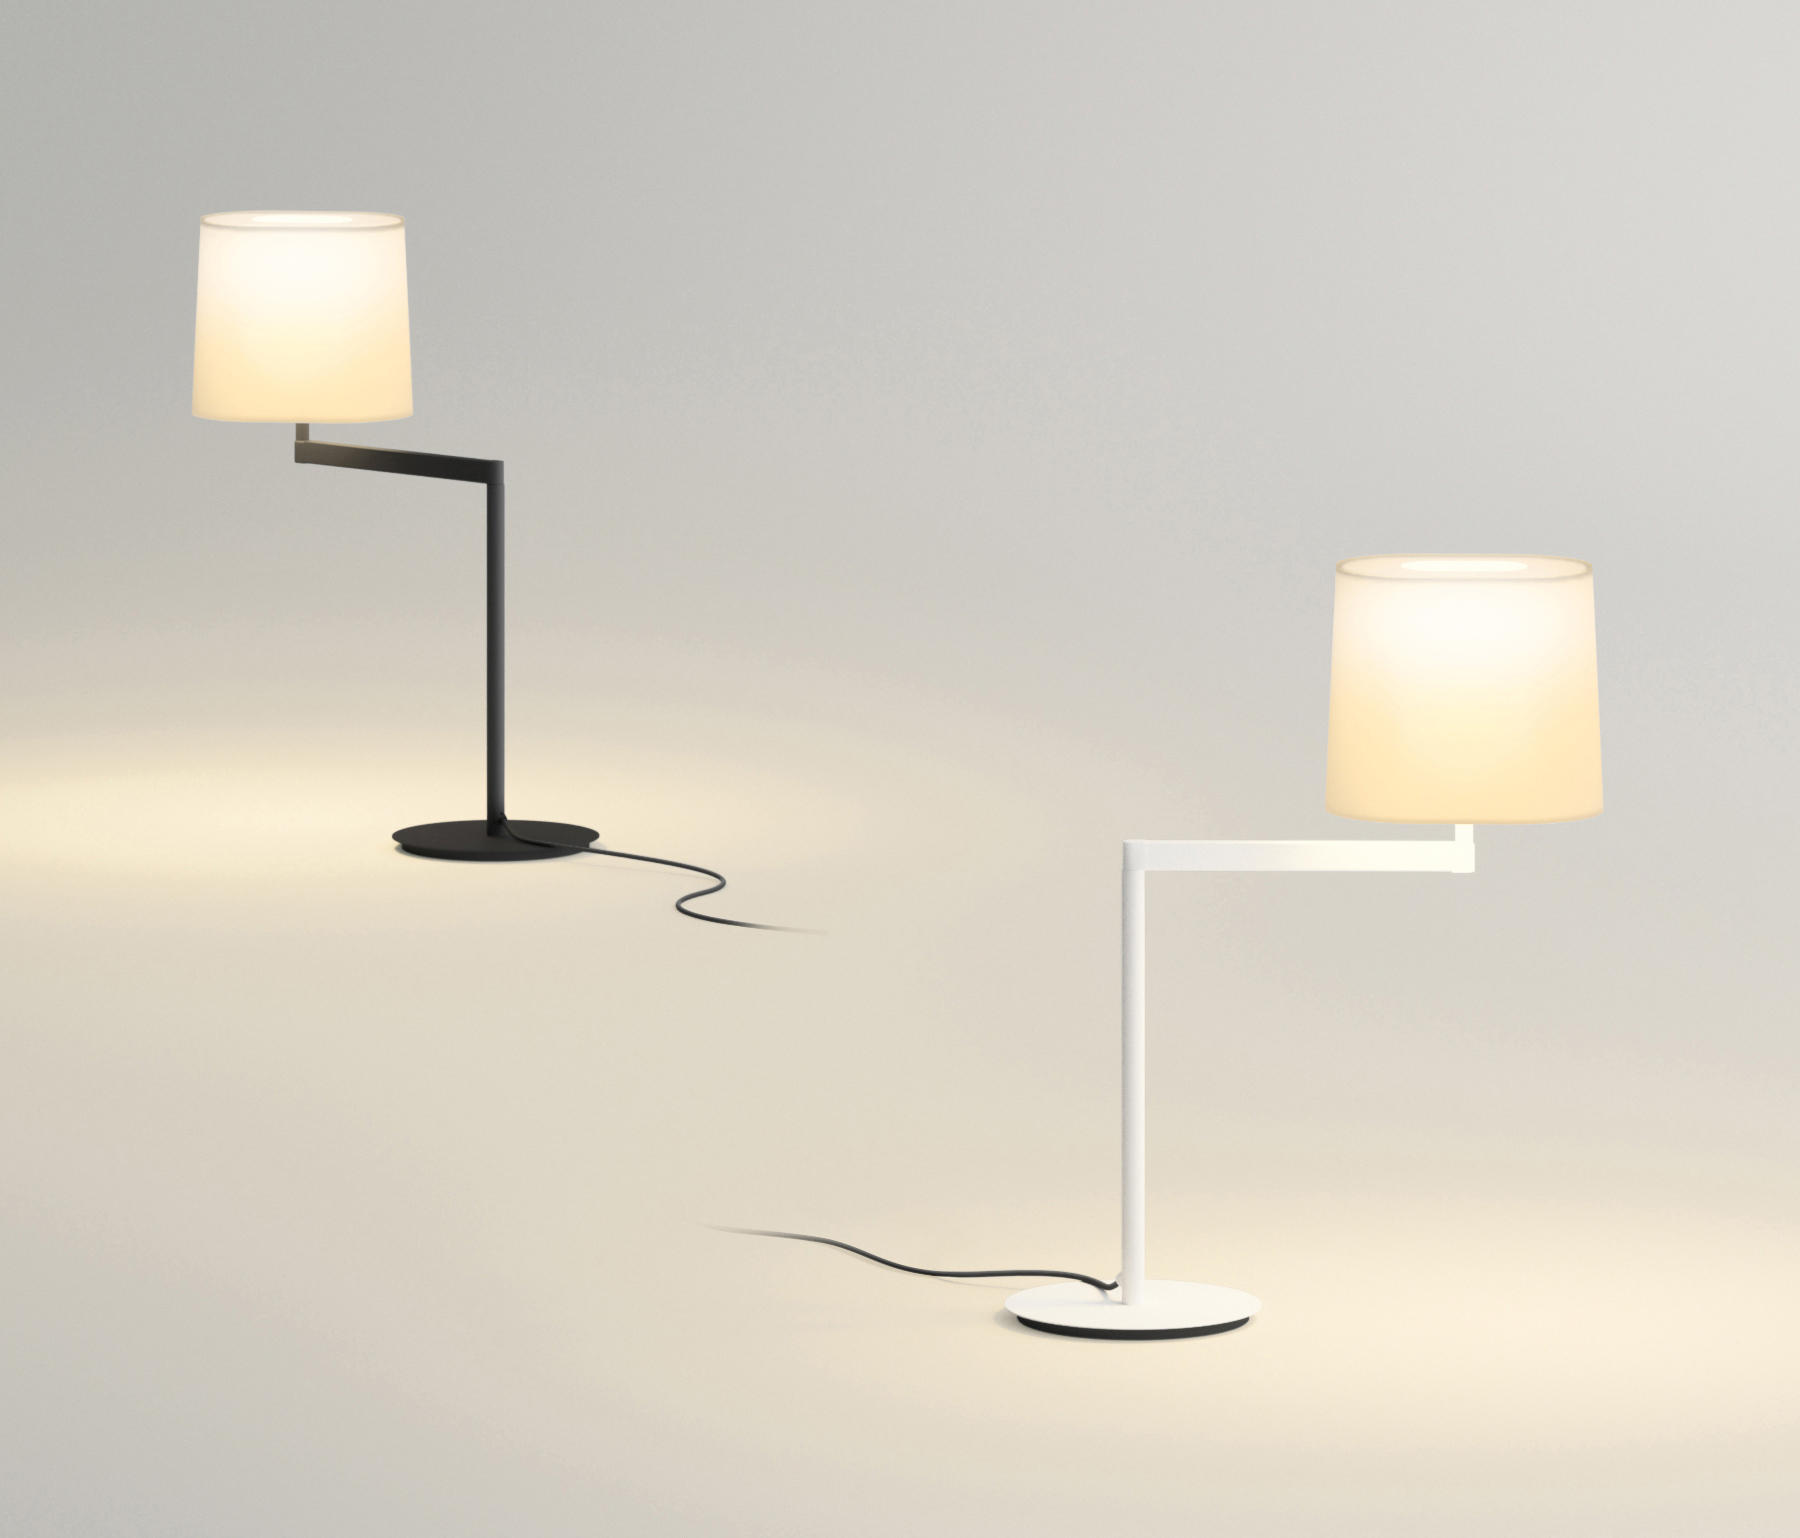 swing 0503 floor lamp general lighting from vibia architonic. Black Bedroom Furniture Sets. Home Design Ideas